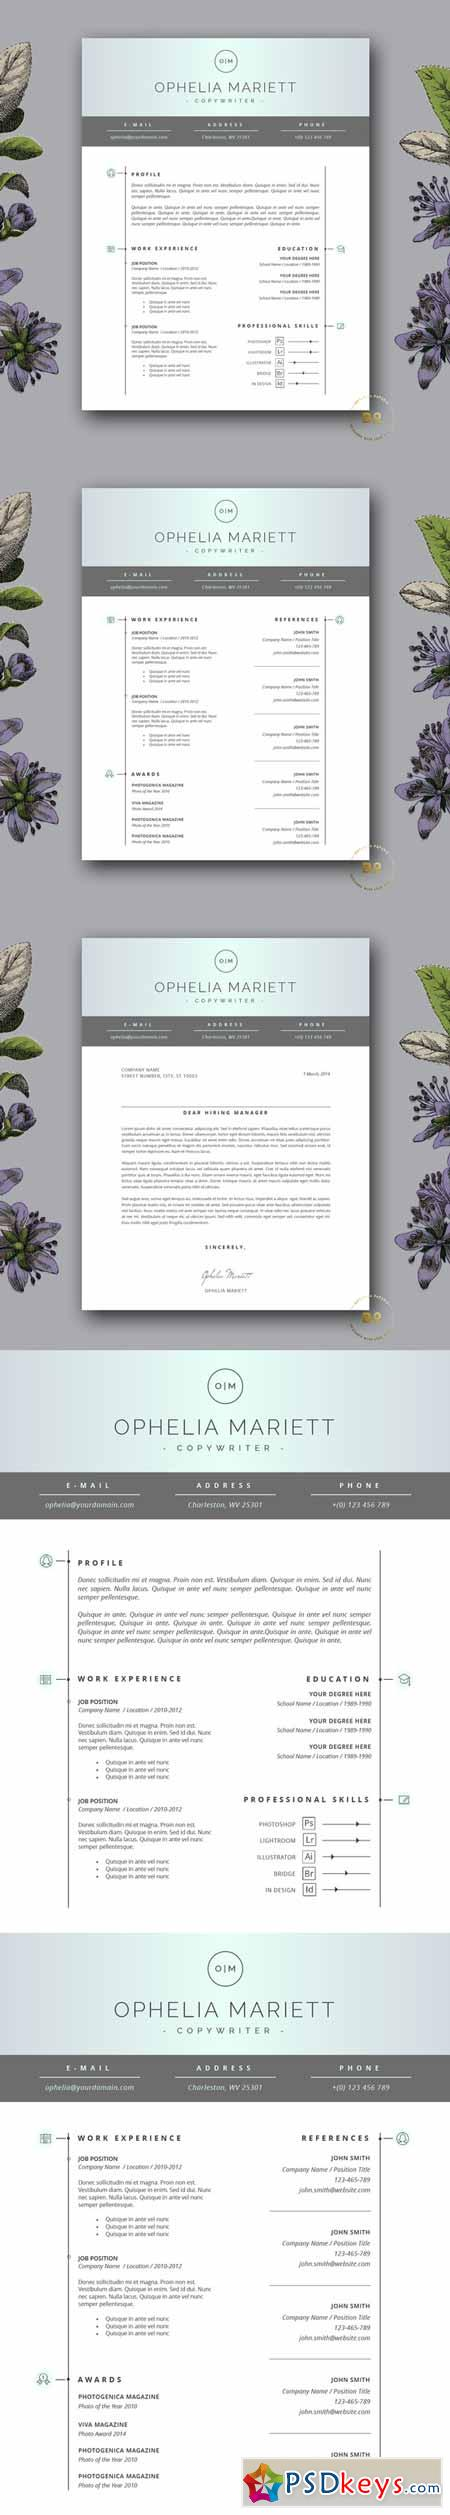 modern resume template cv design 213485  u00bb free download photoshop vector stock image via torrent